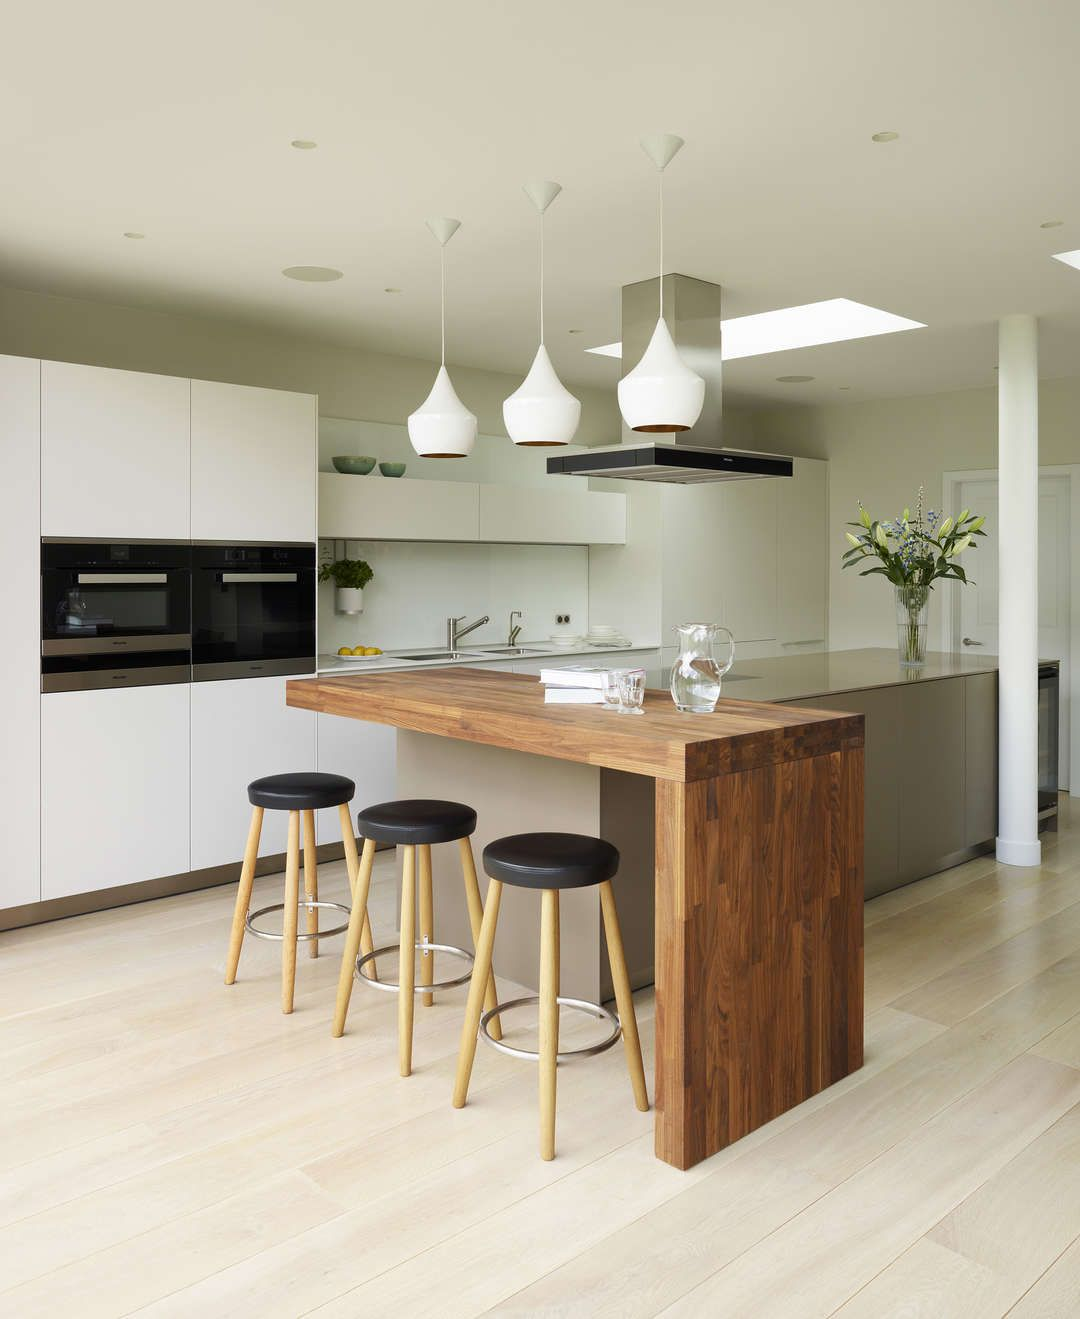 Küche Tresen Kitchen Architecture S Bulthaup B3 Furniture In Kaolin Laminate